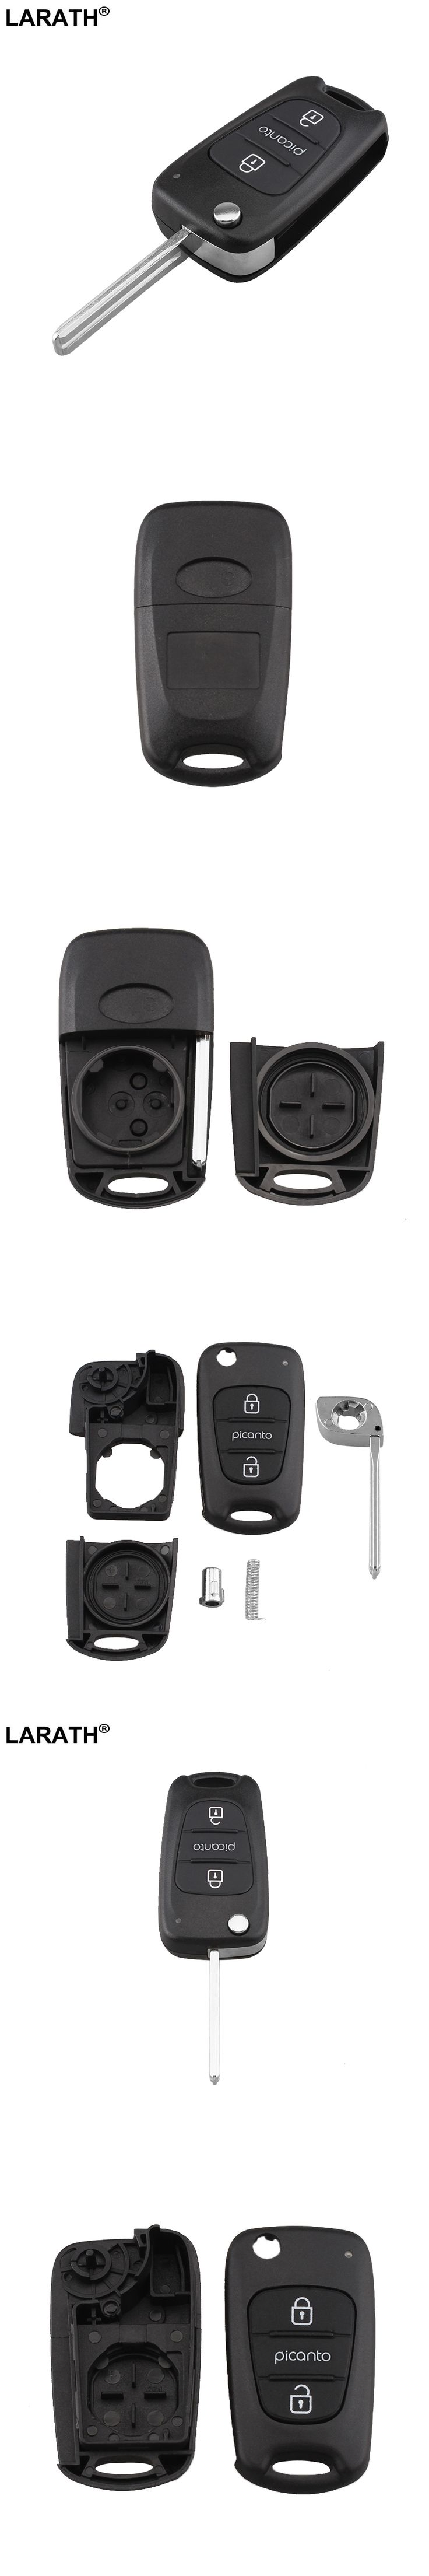 LARATH Flip Folding 3 Buttons Remote Key Shell FOB Case Cover Replacement For KIA Picanto Car Key Uncut Blade